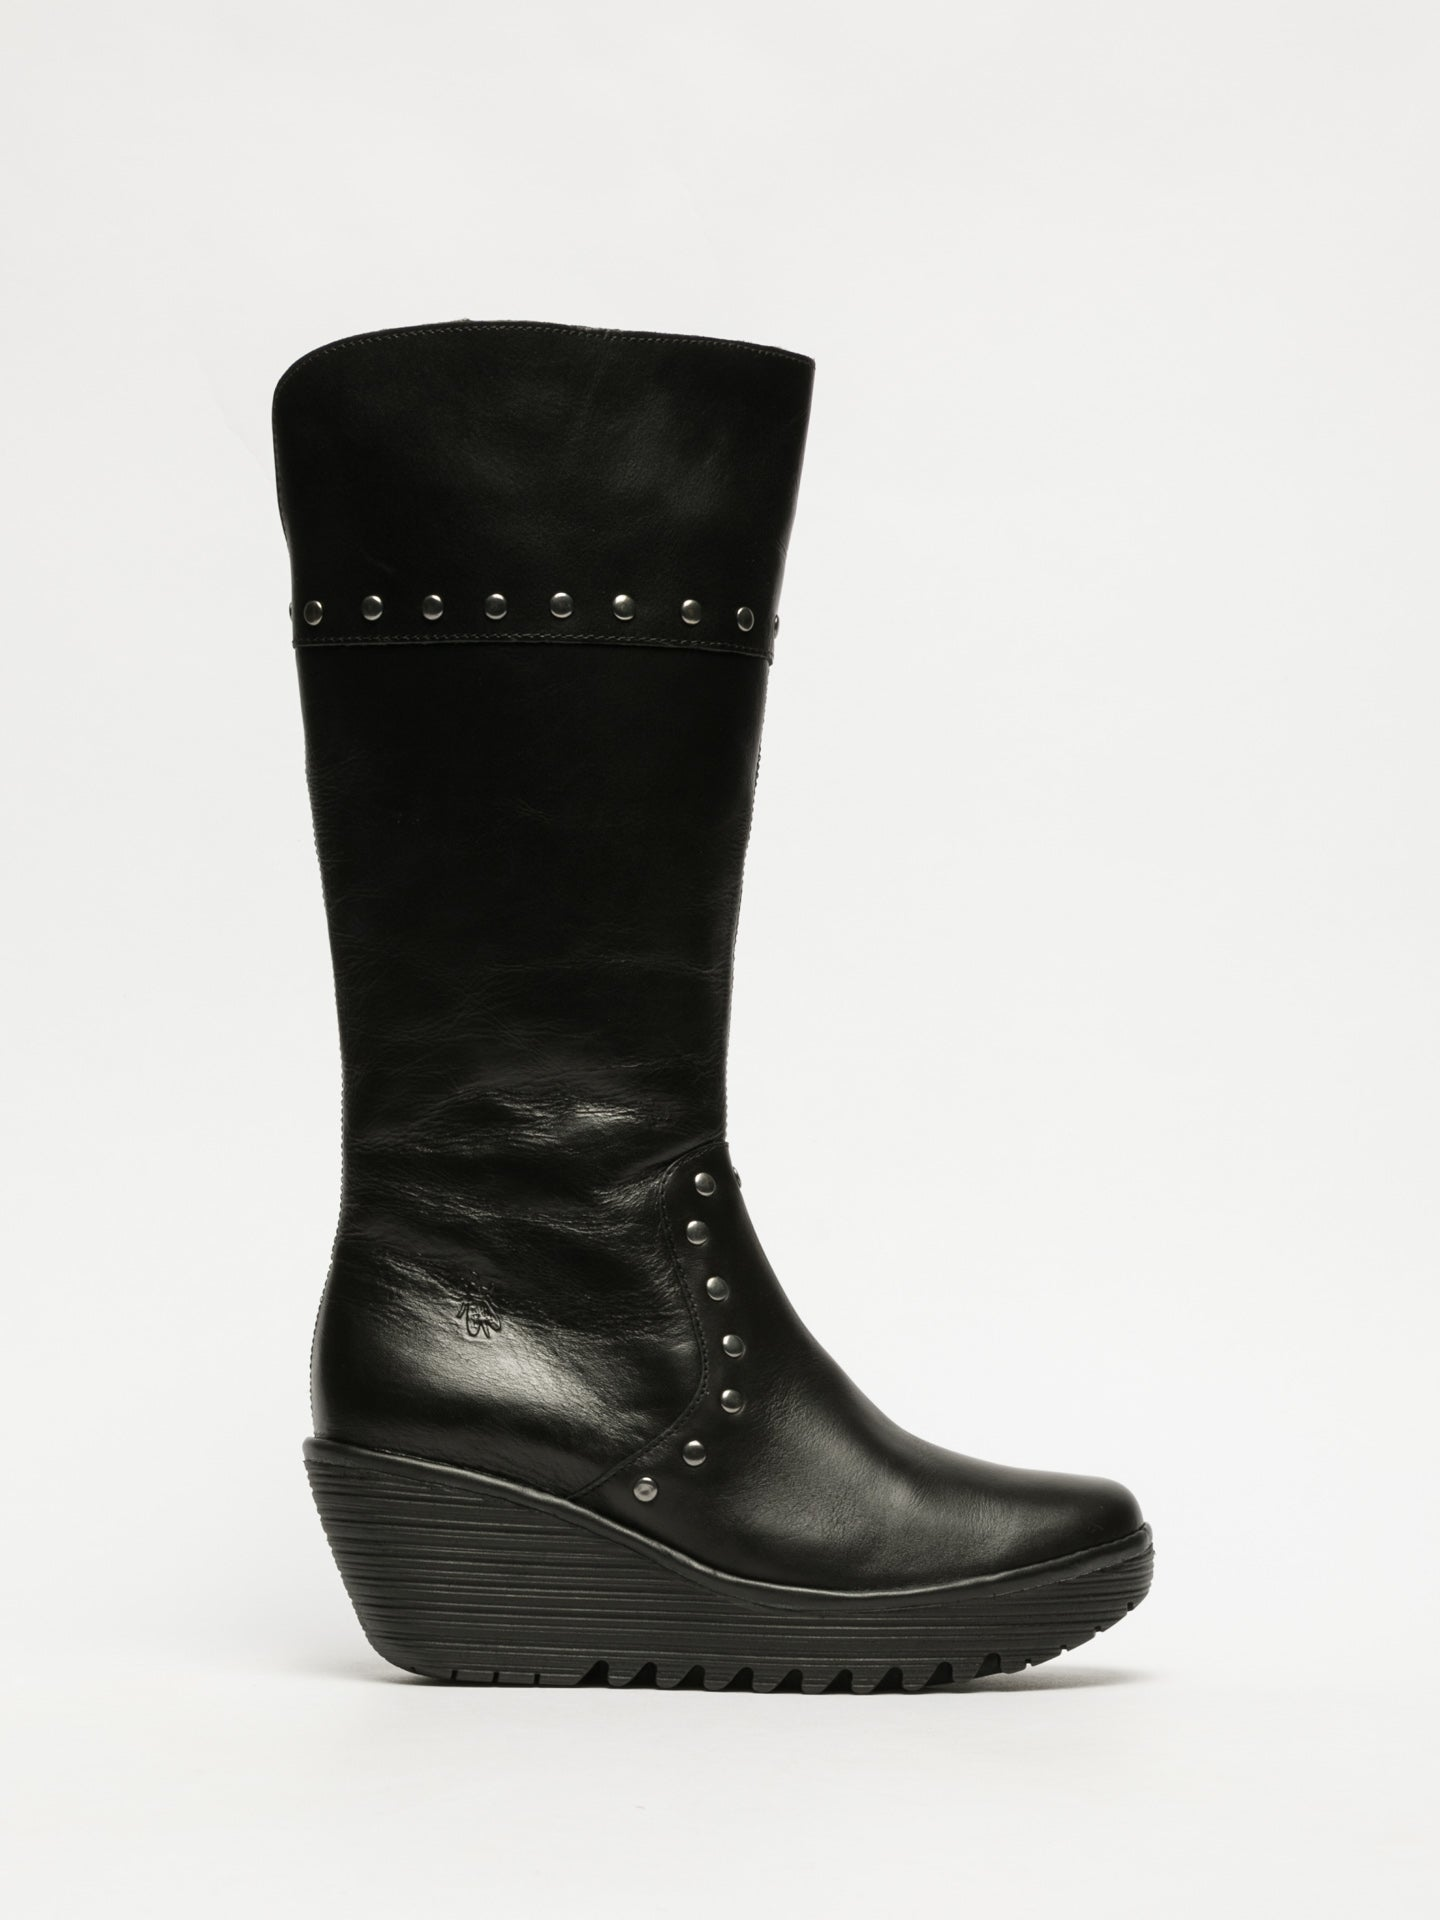 Fly London Coal Black Studded Boots